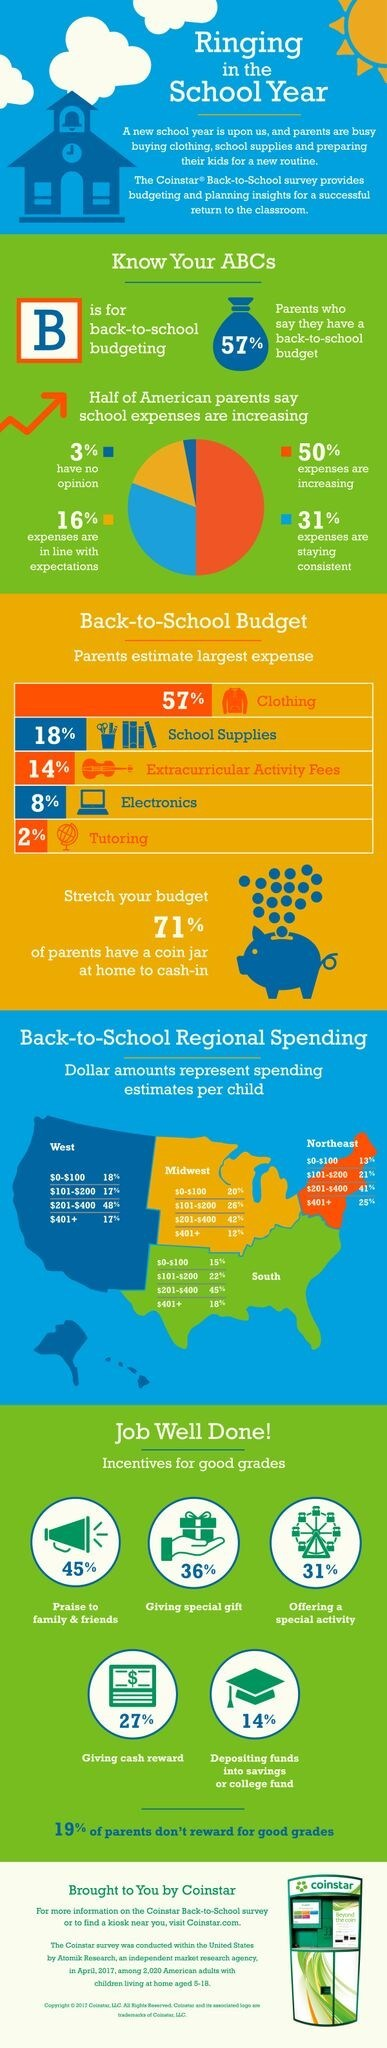 A new back-to-school infographic, based on Coinstar survey results, show that the majority of U.S. families (57%) with school-aged children have a back-to-school budget and anticipate clothing to be their highest expense. Other interesting findings reported, including the fact that most parents reward their children for achieving good grades.